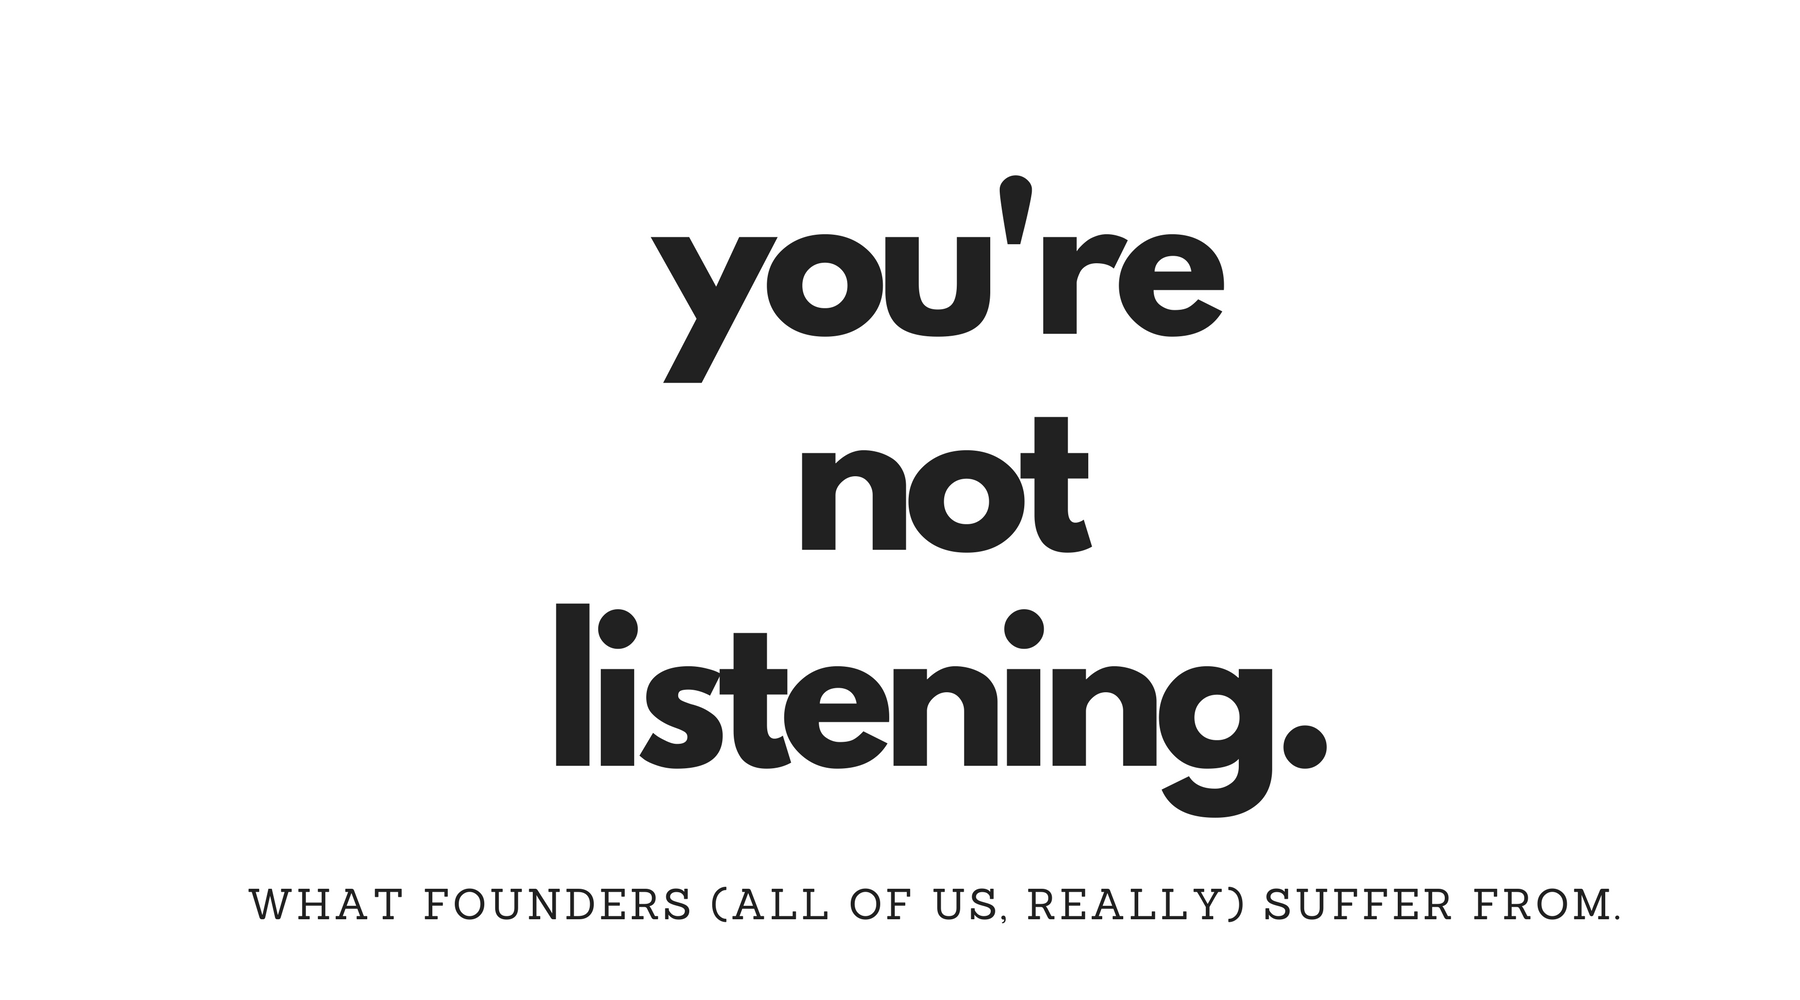 Start Ups have trouble really hearing what early adopters have to say.